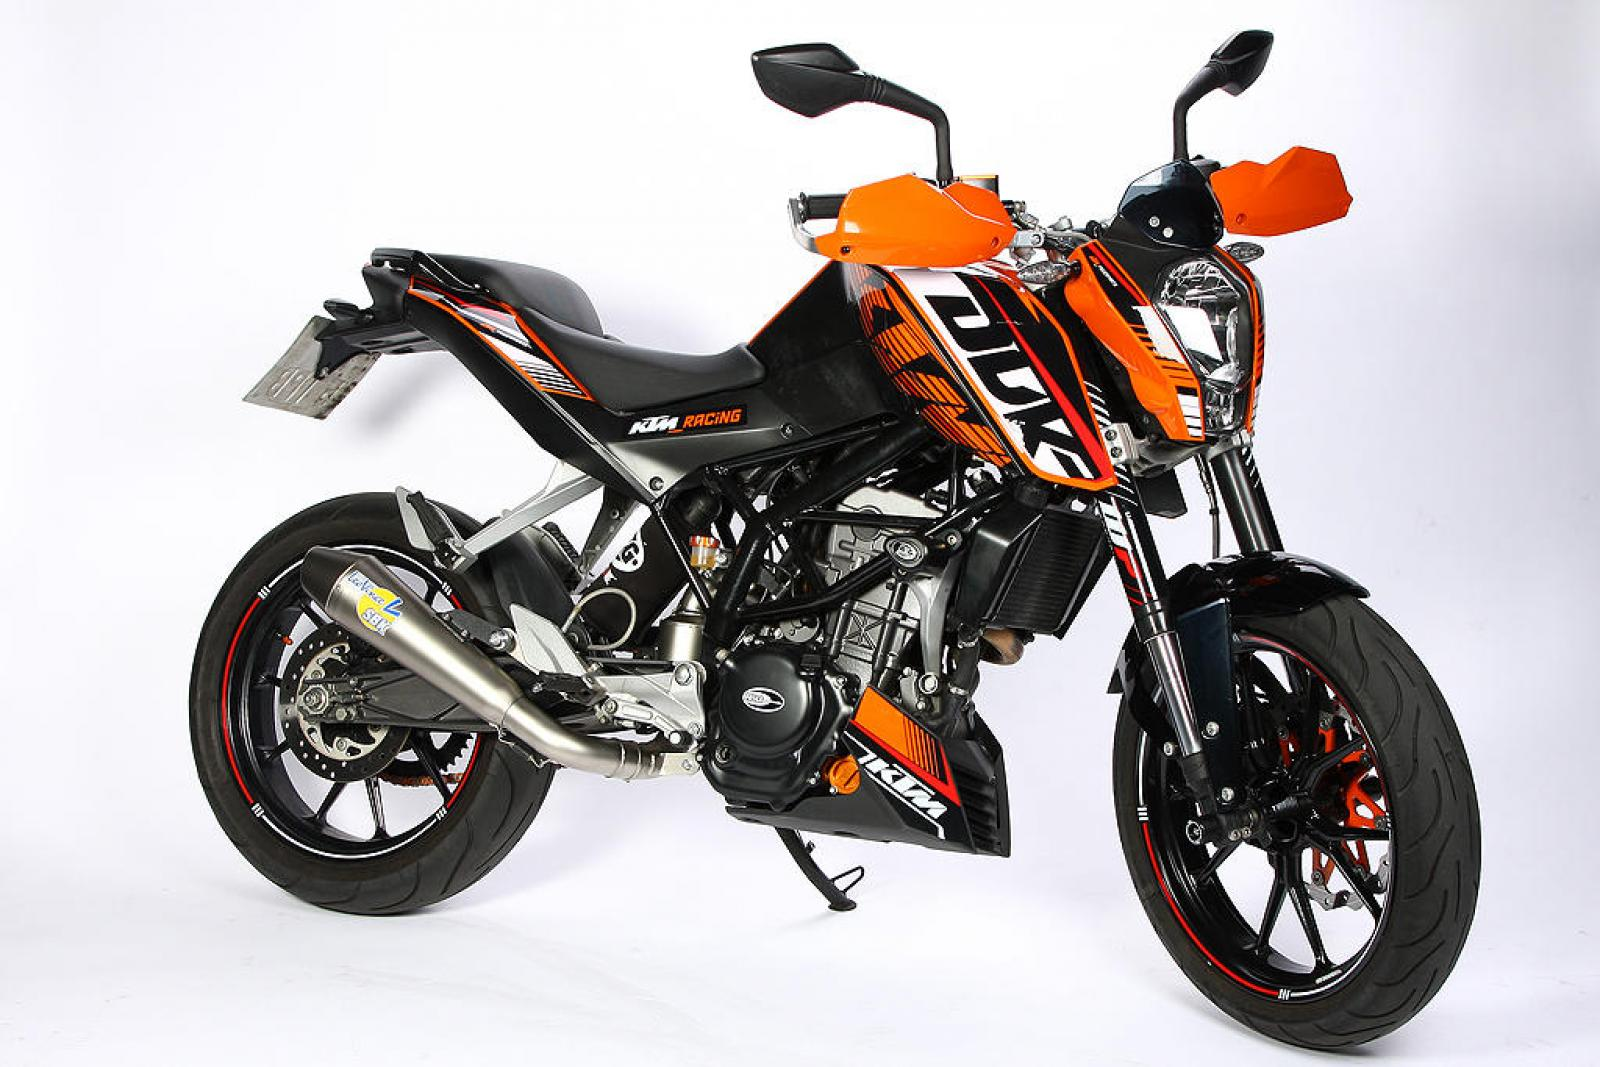 2014 ktm 125 duke moto zombdrive com. Black Bedroom Furniture Sets. Home Design Ideas